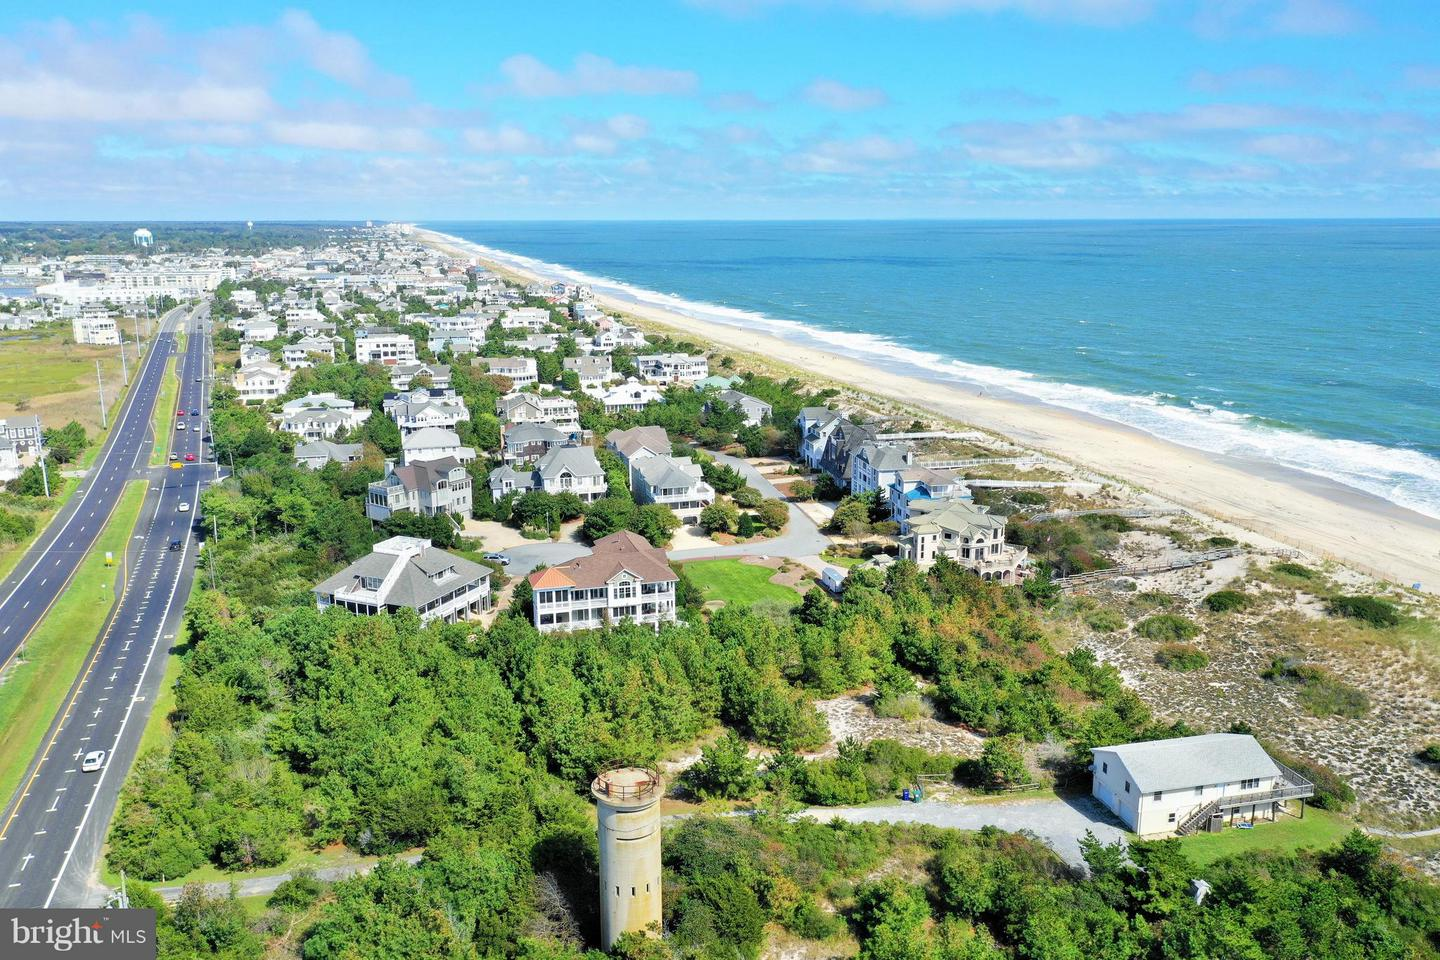 1002293530-300720130827-2018-09-25-15-08-25 31 Hall Ave | Rehoboth Beach, De Real Estate For Sale | MLS# 1002293530  - Suzanne Macnab